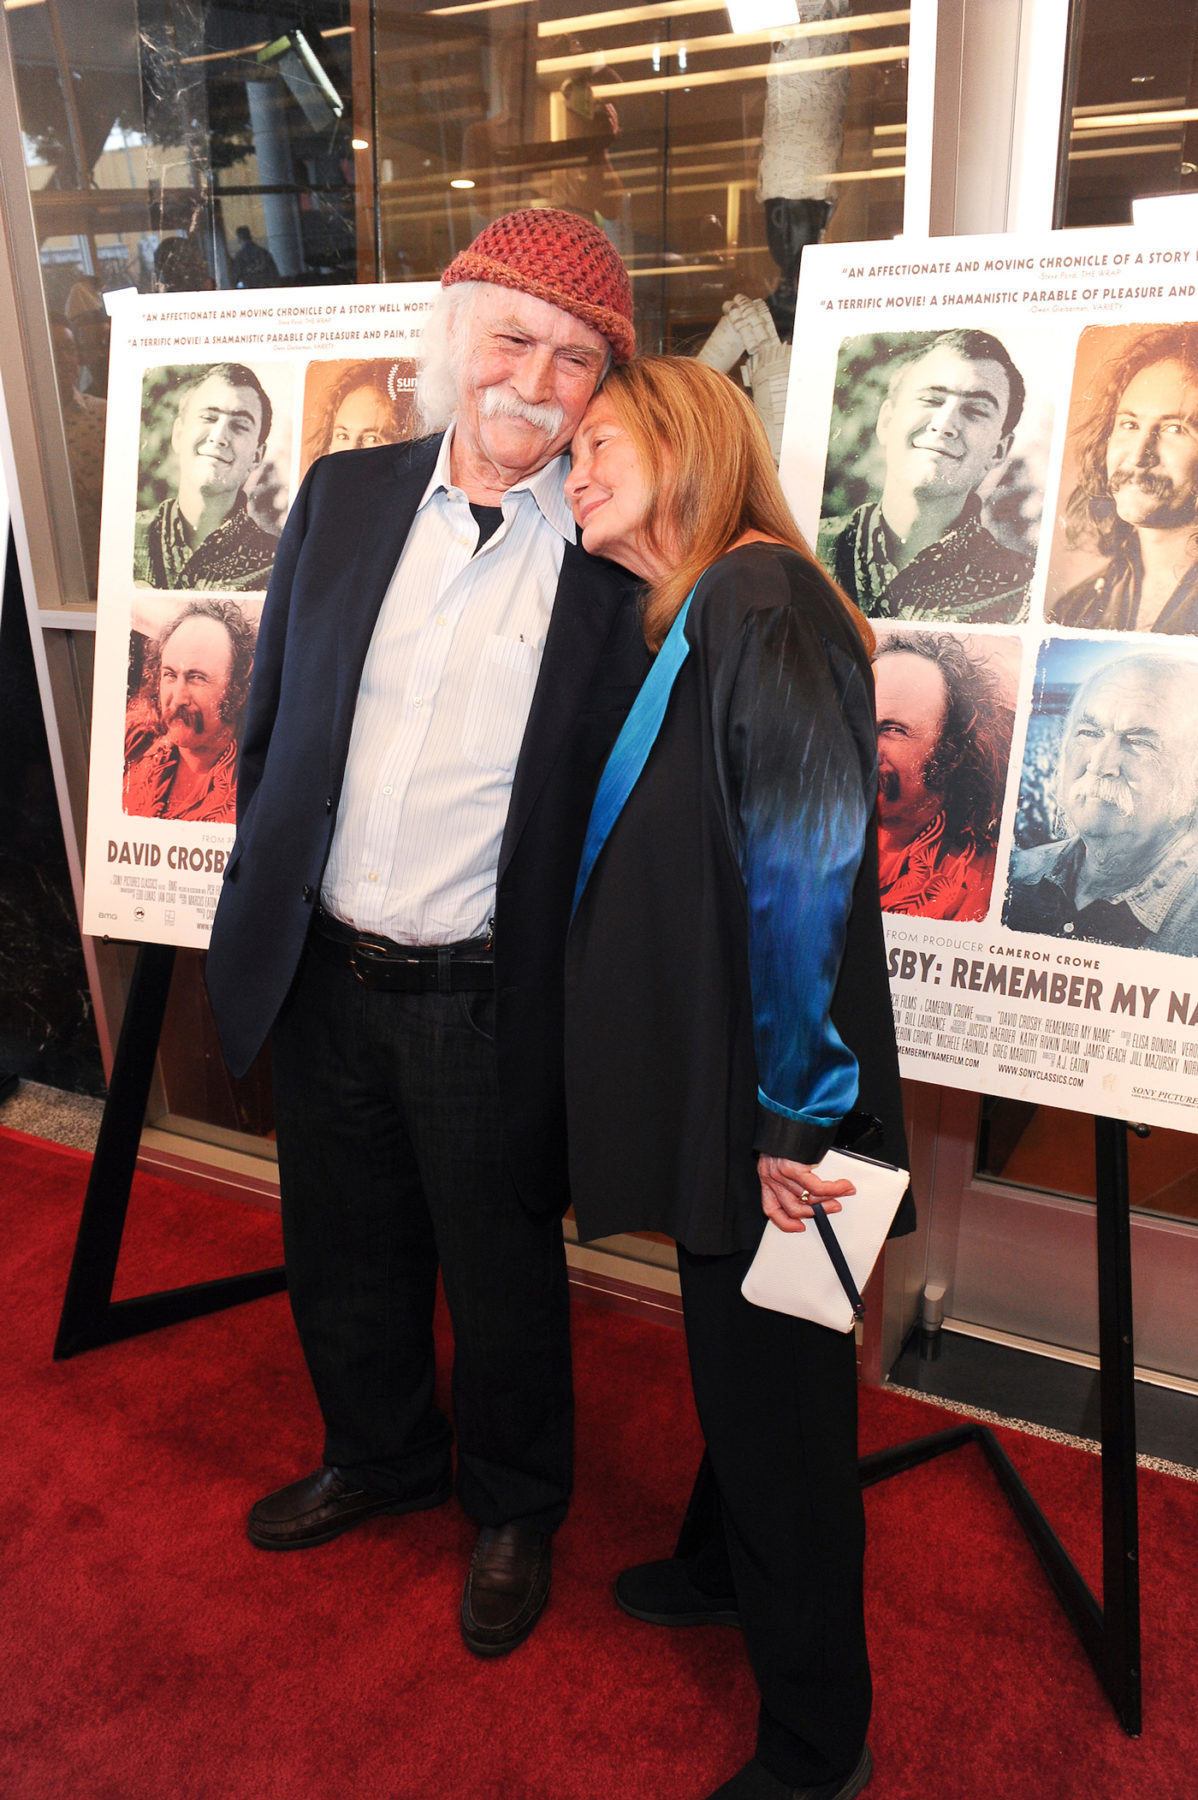 David Crosby with spouse Jan Dance